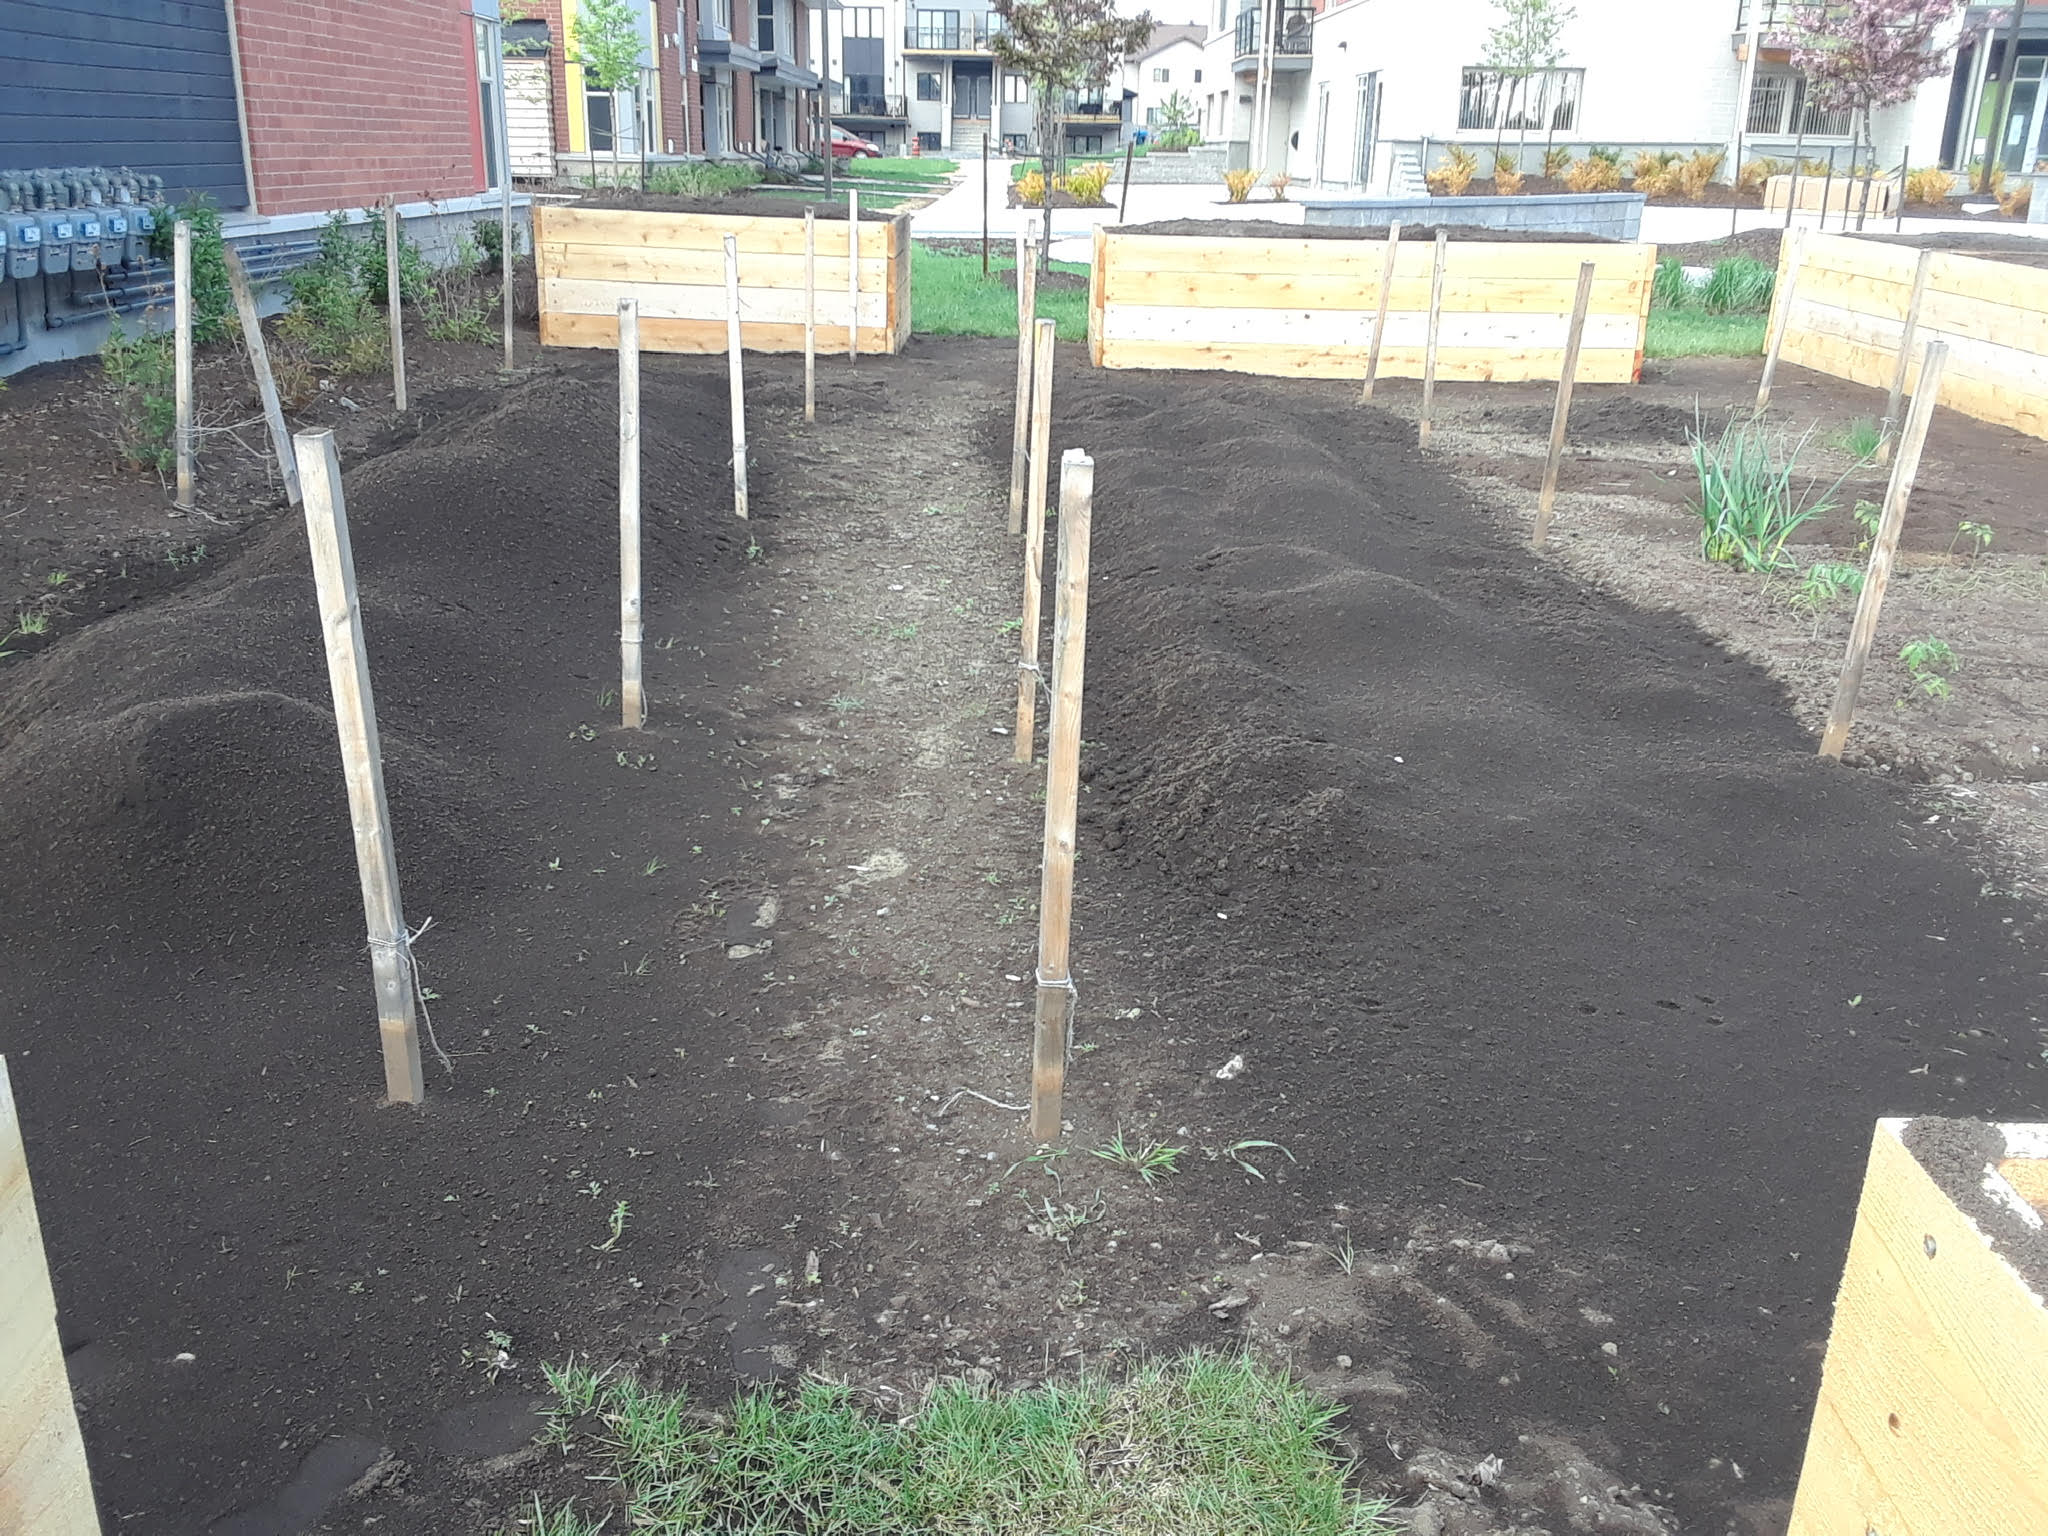 New soil for the Community Gardens